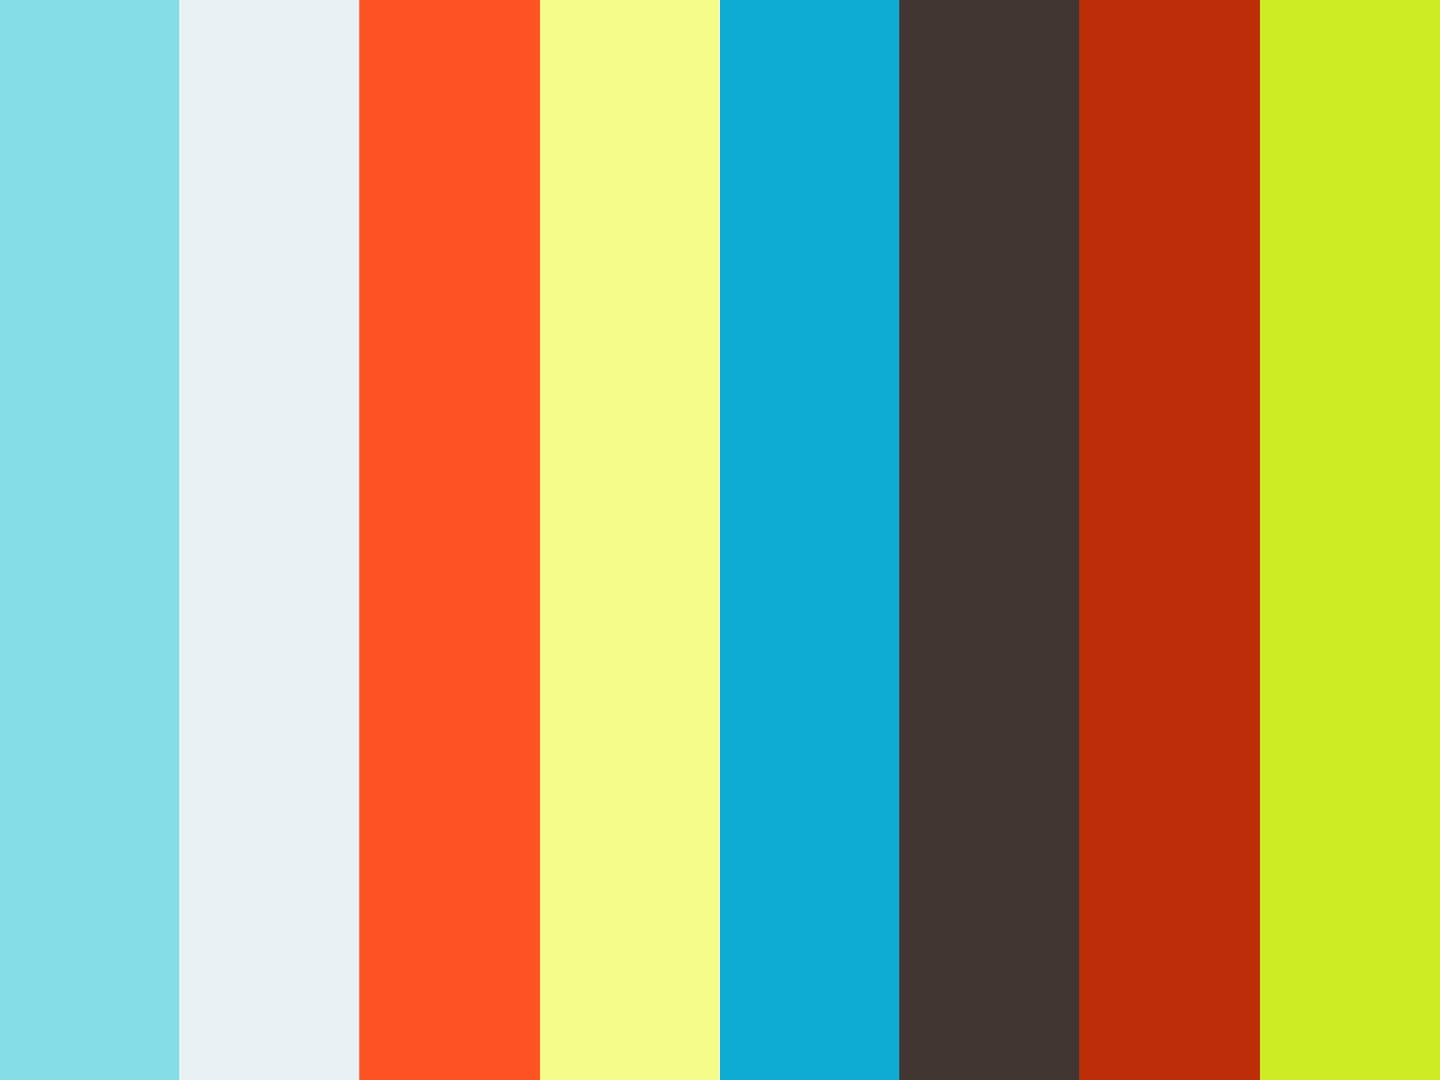 Paint Transitions Pack for FCPX Motion Design